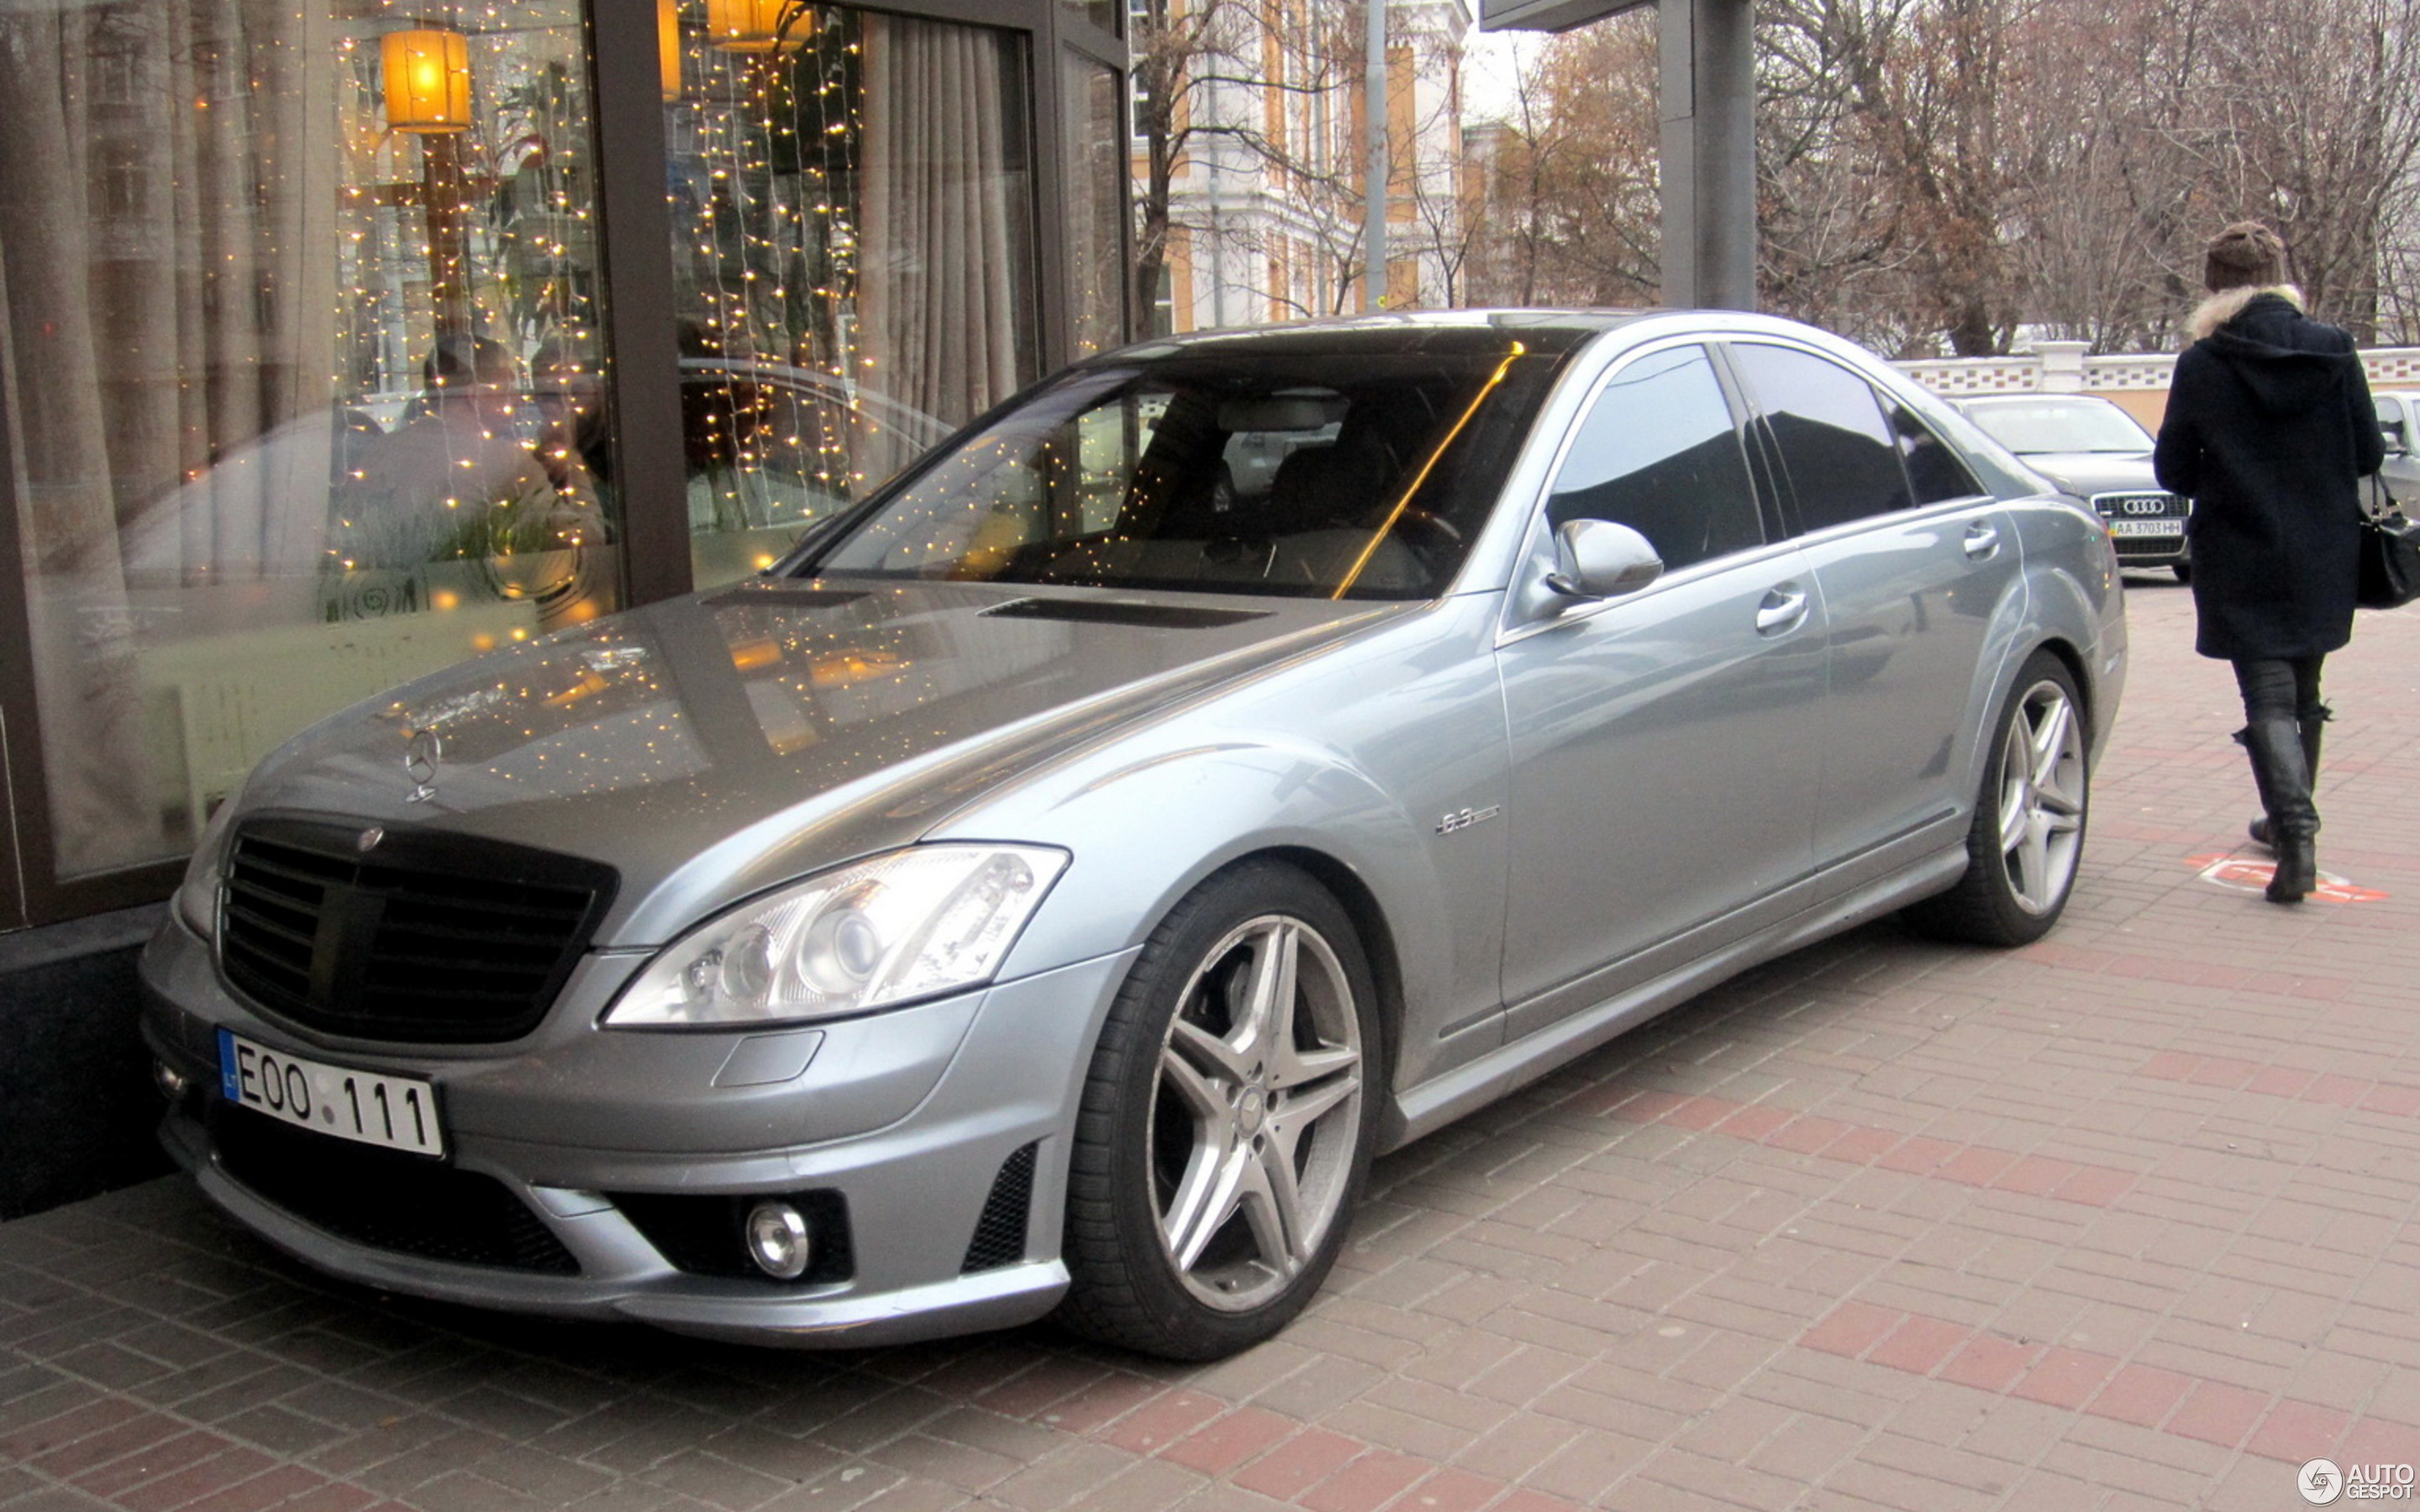 Mercedes Benz S 63 AMG W221 7 July 2015 Autogespot